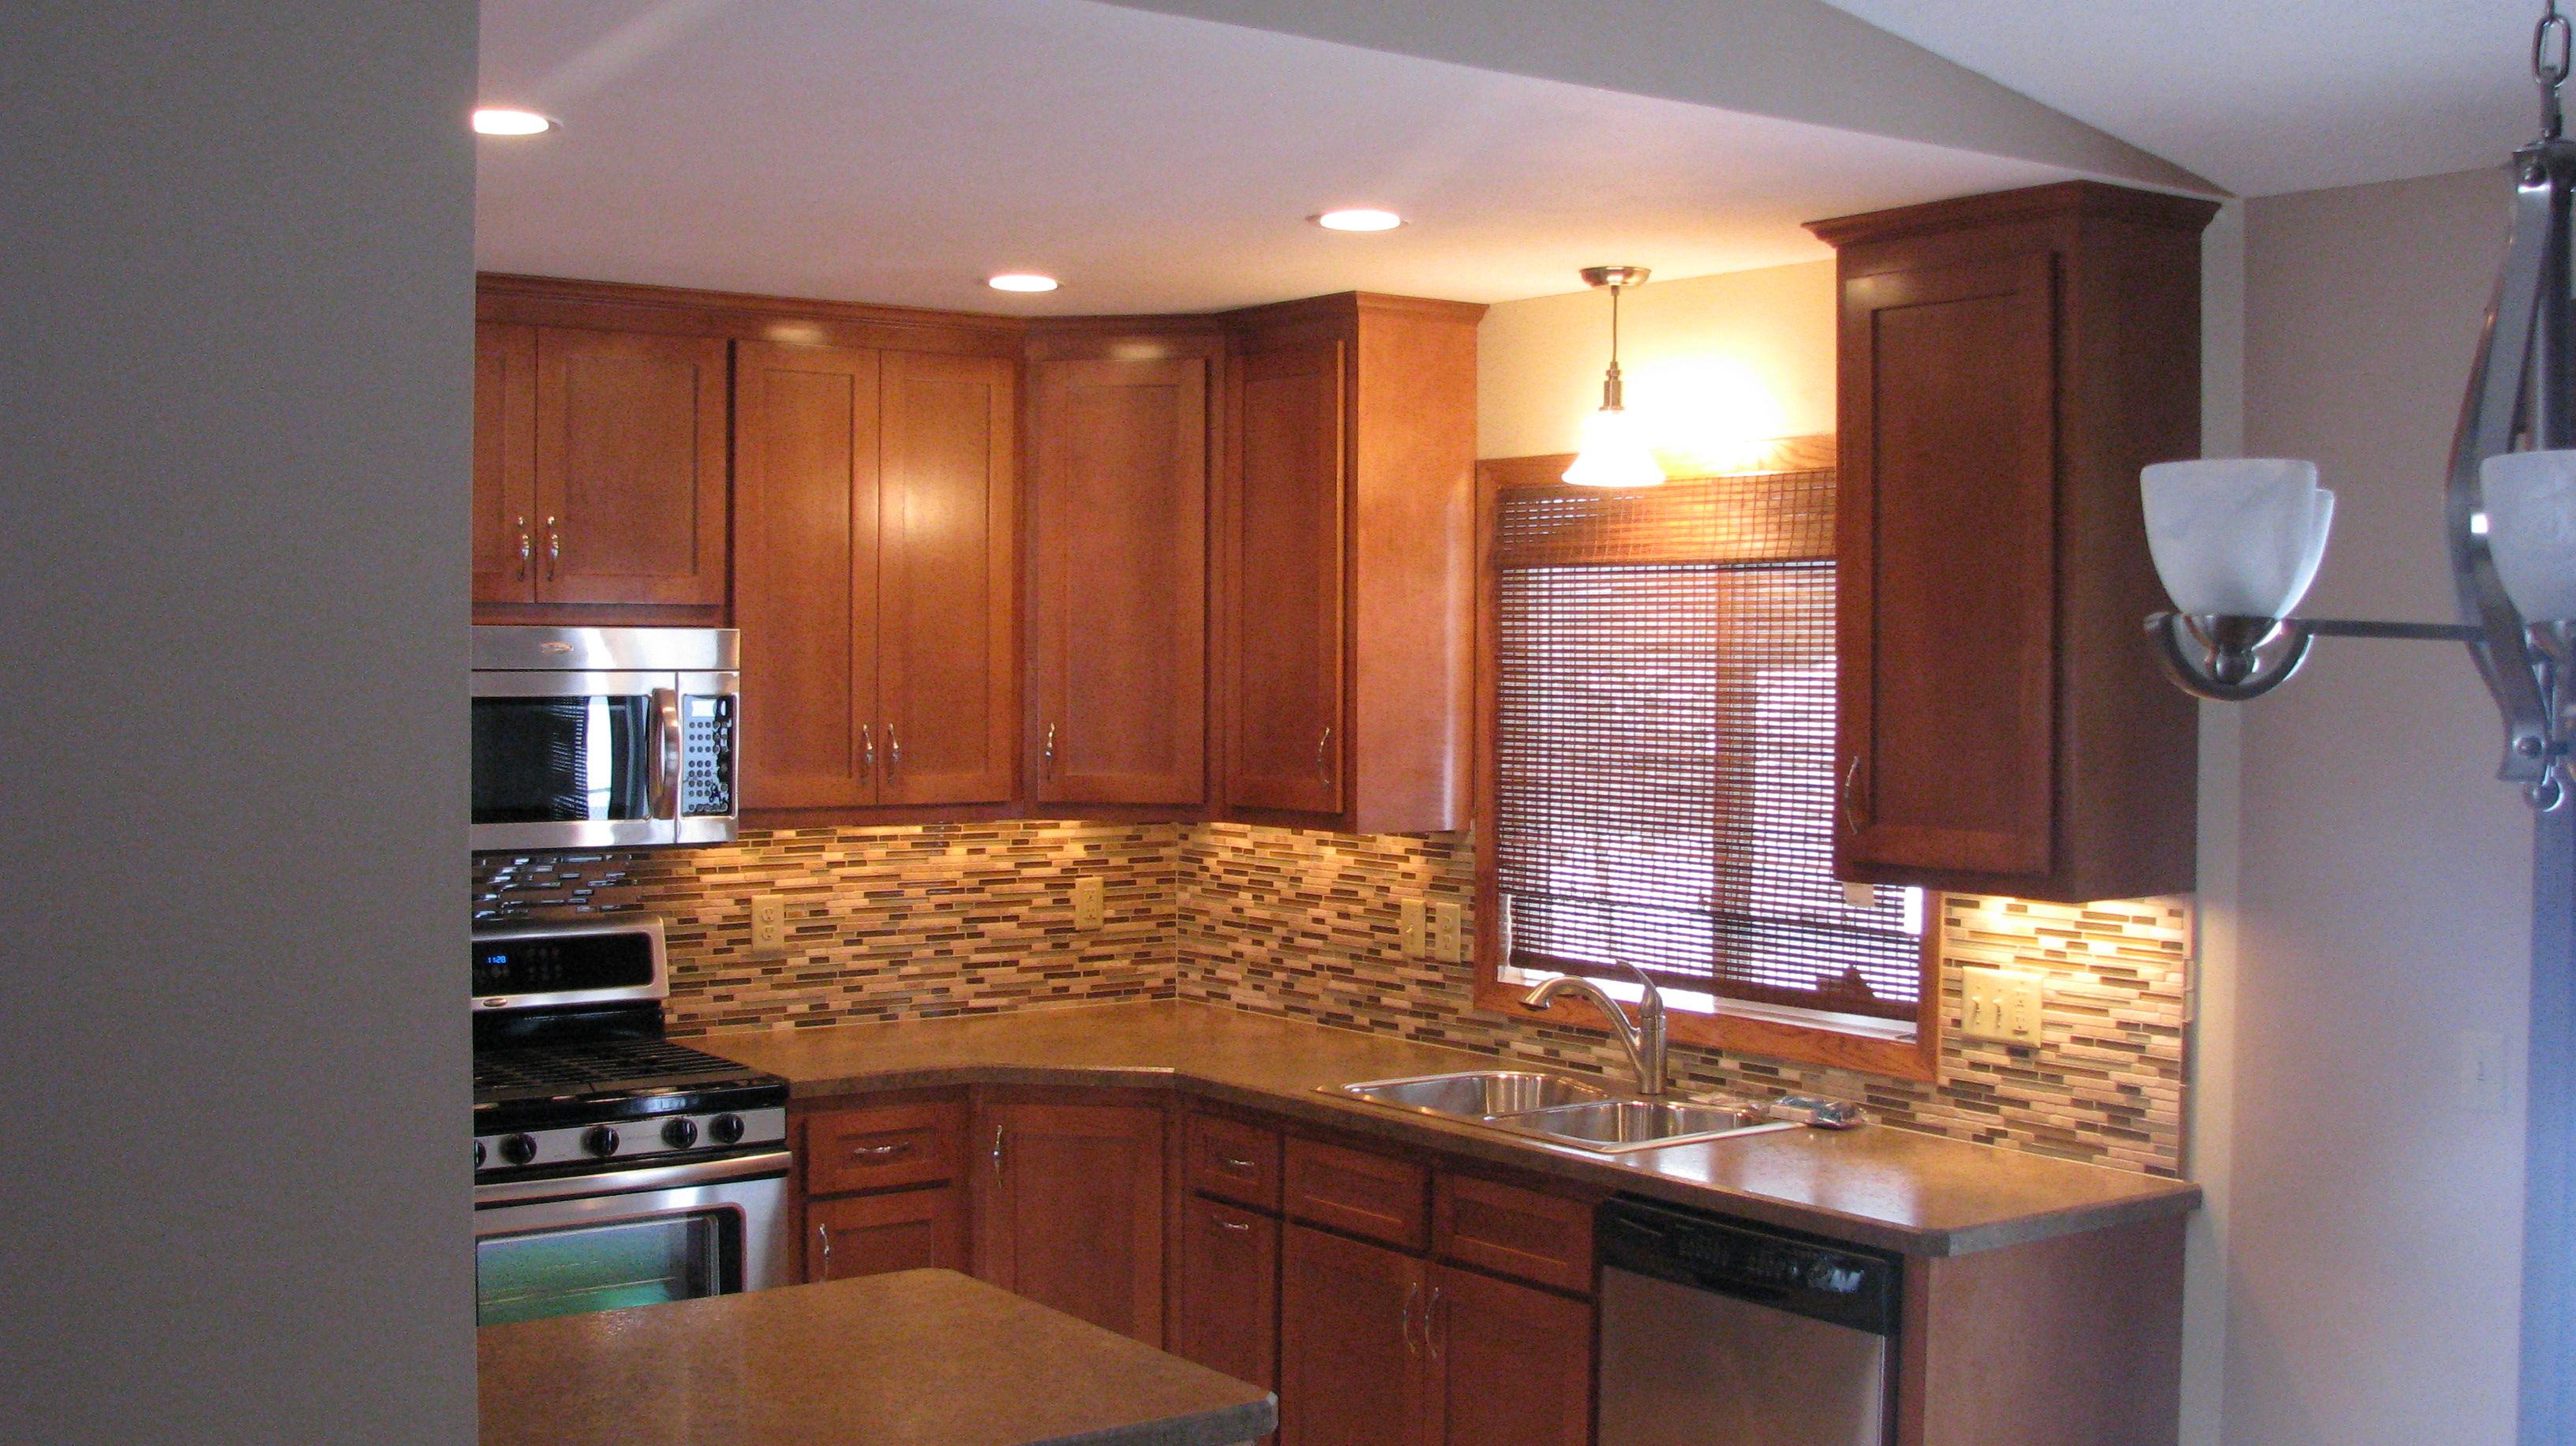 Split entry kitchen remodel remodeling kitchen for Kitchen renovation ideas images